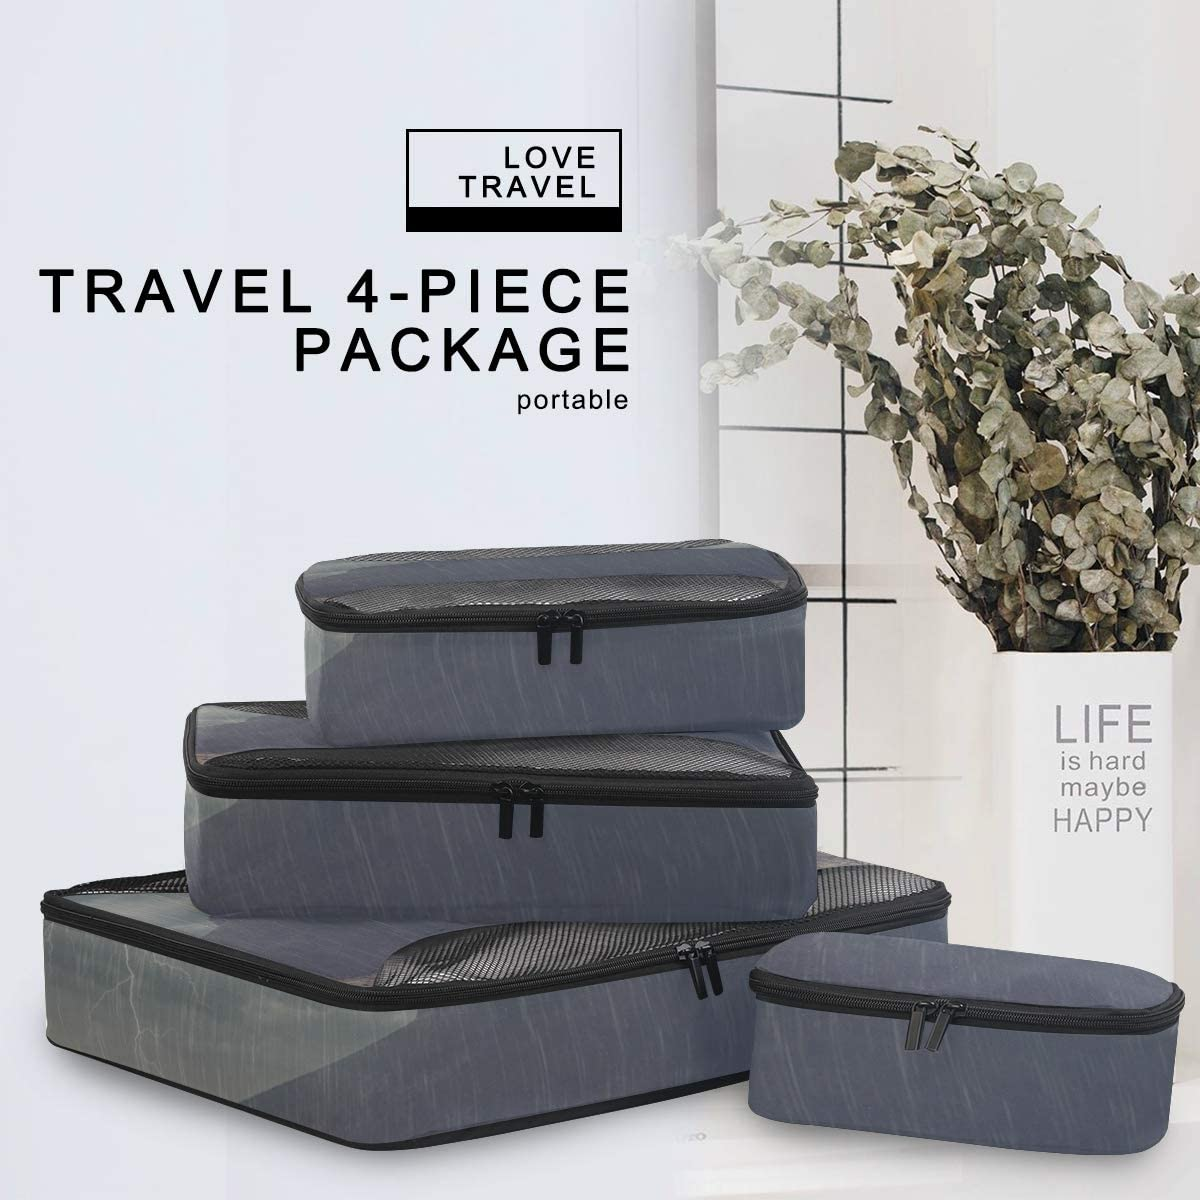 4 Set Packing Cubes Travel Luggage Packing Organizers Two Elephants With Plateau